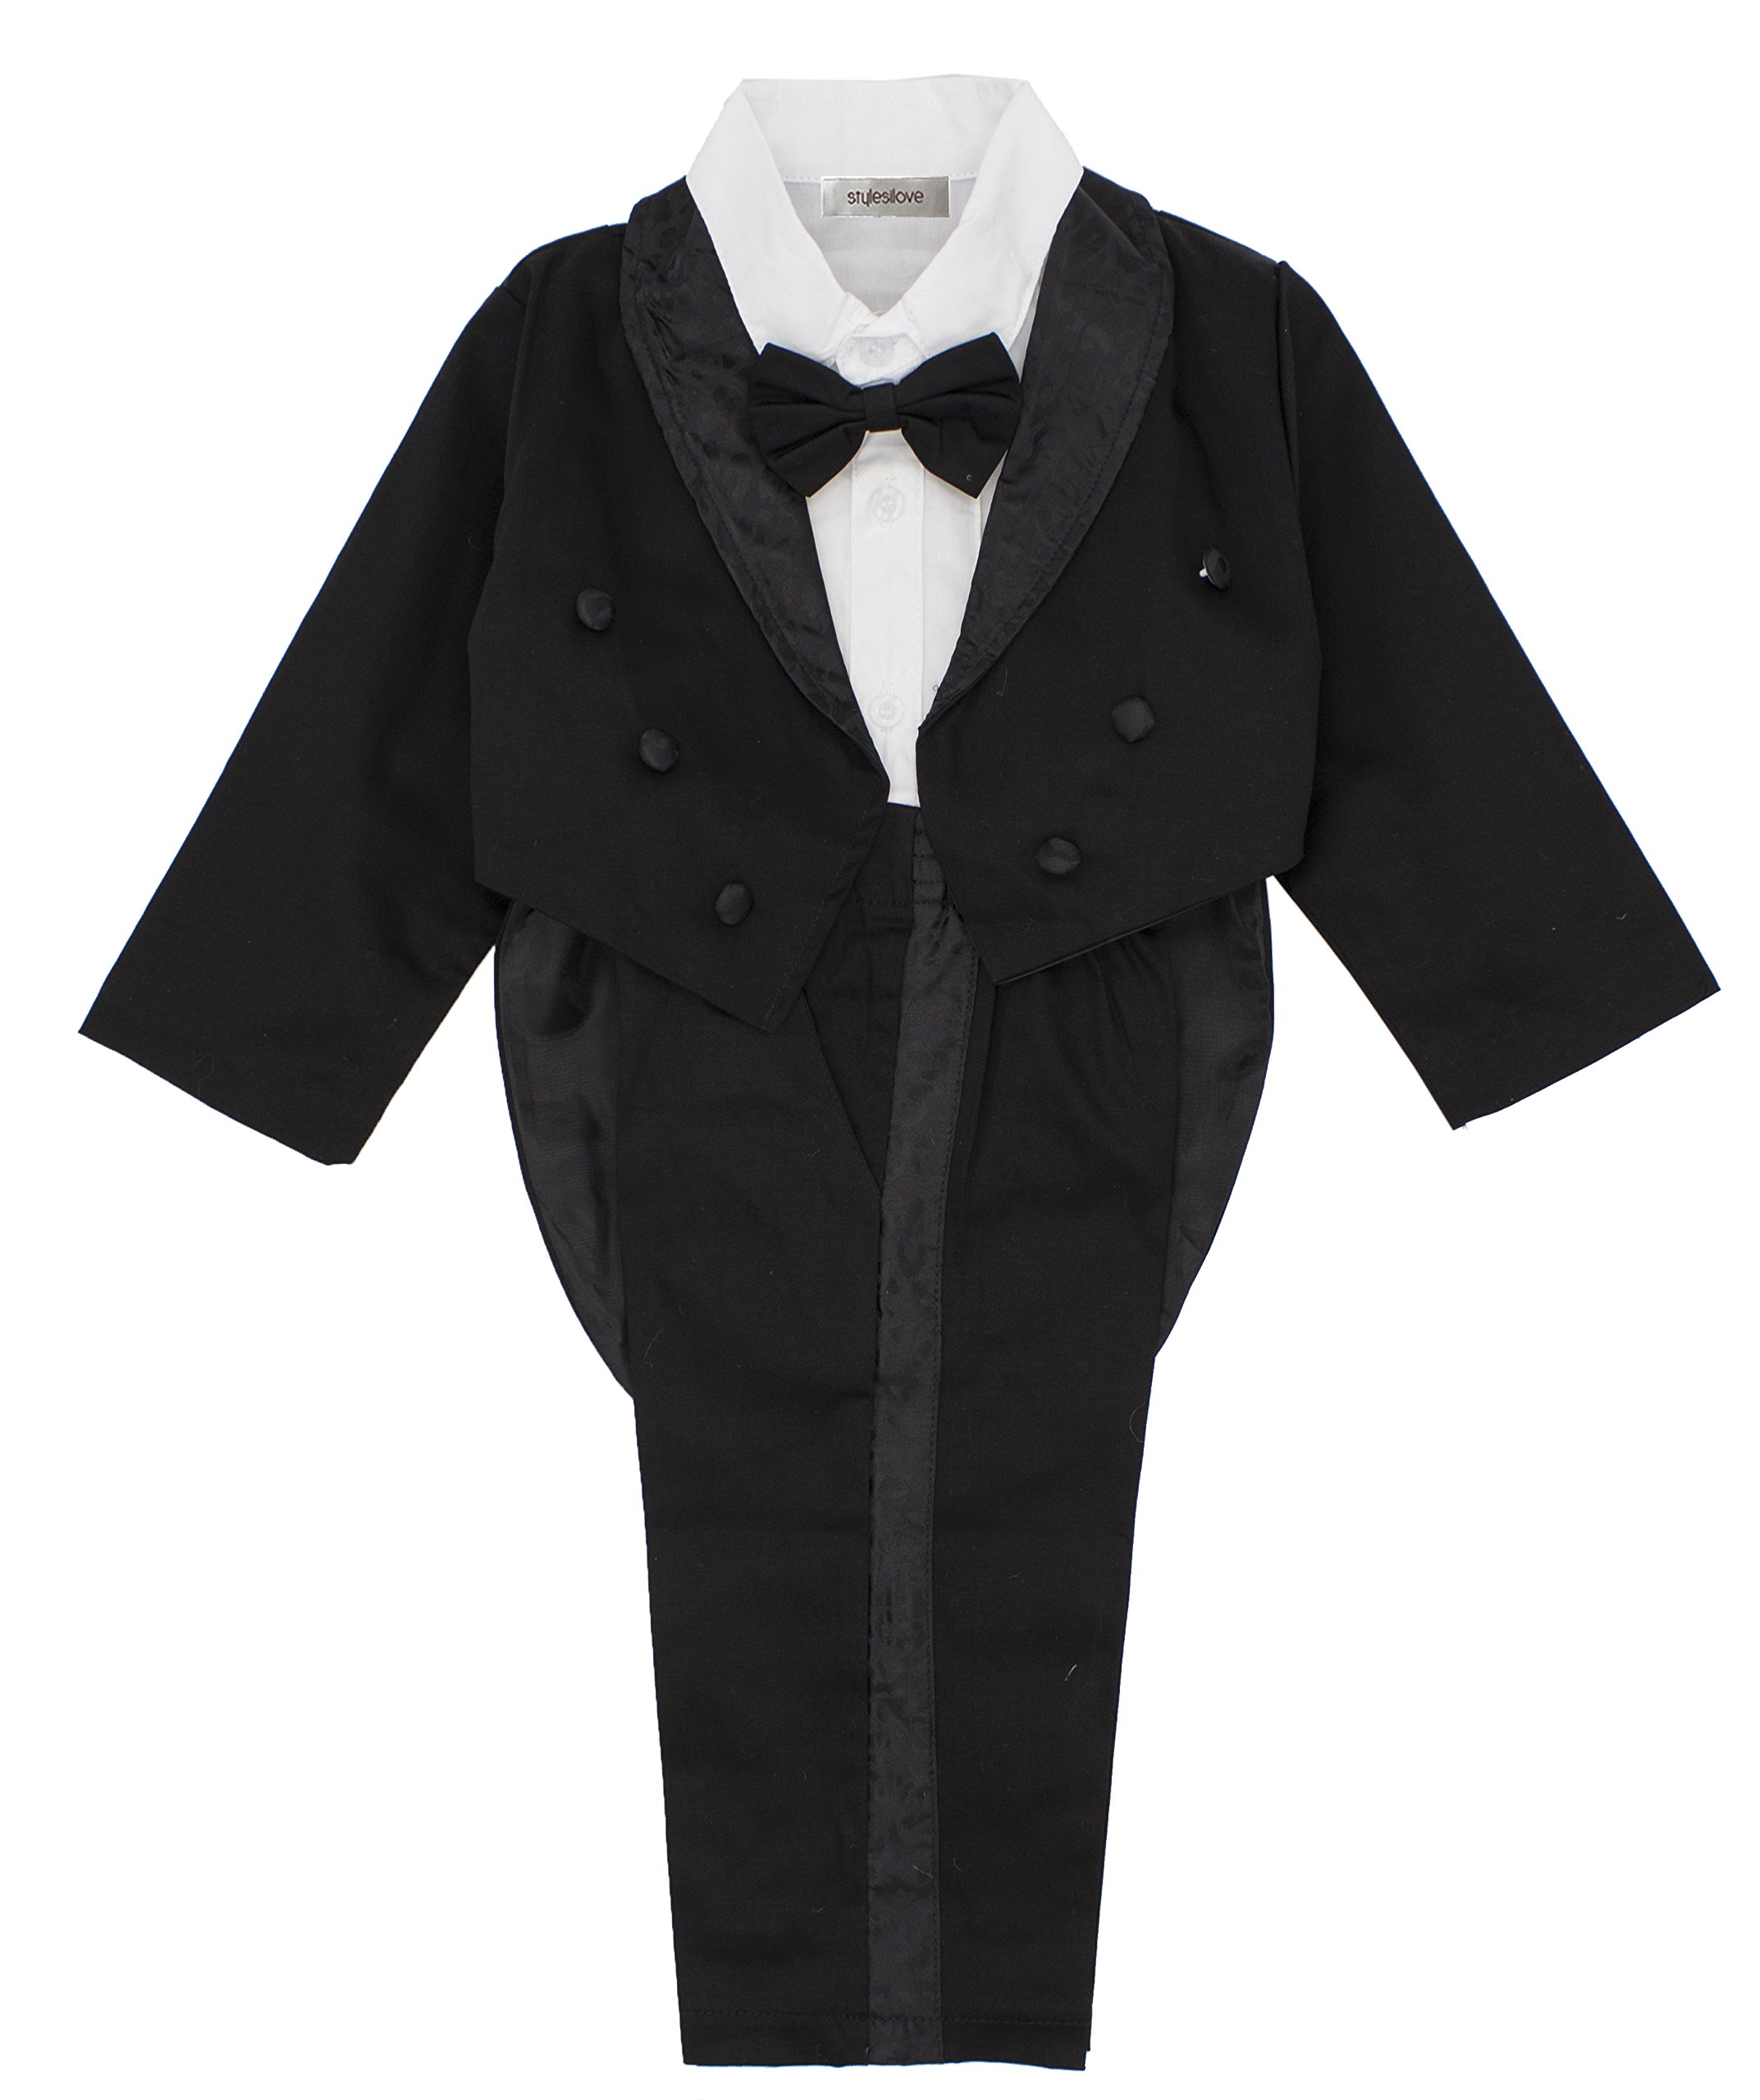 StylesILove Kid Baby Boy Tuxedo Wedding 3-piece Outfit (110/3-4 Years)